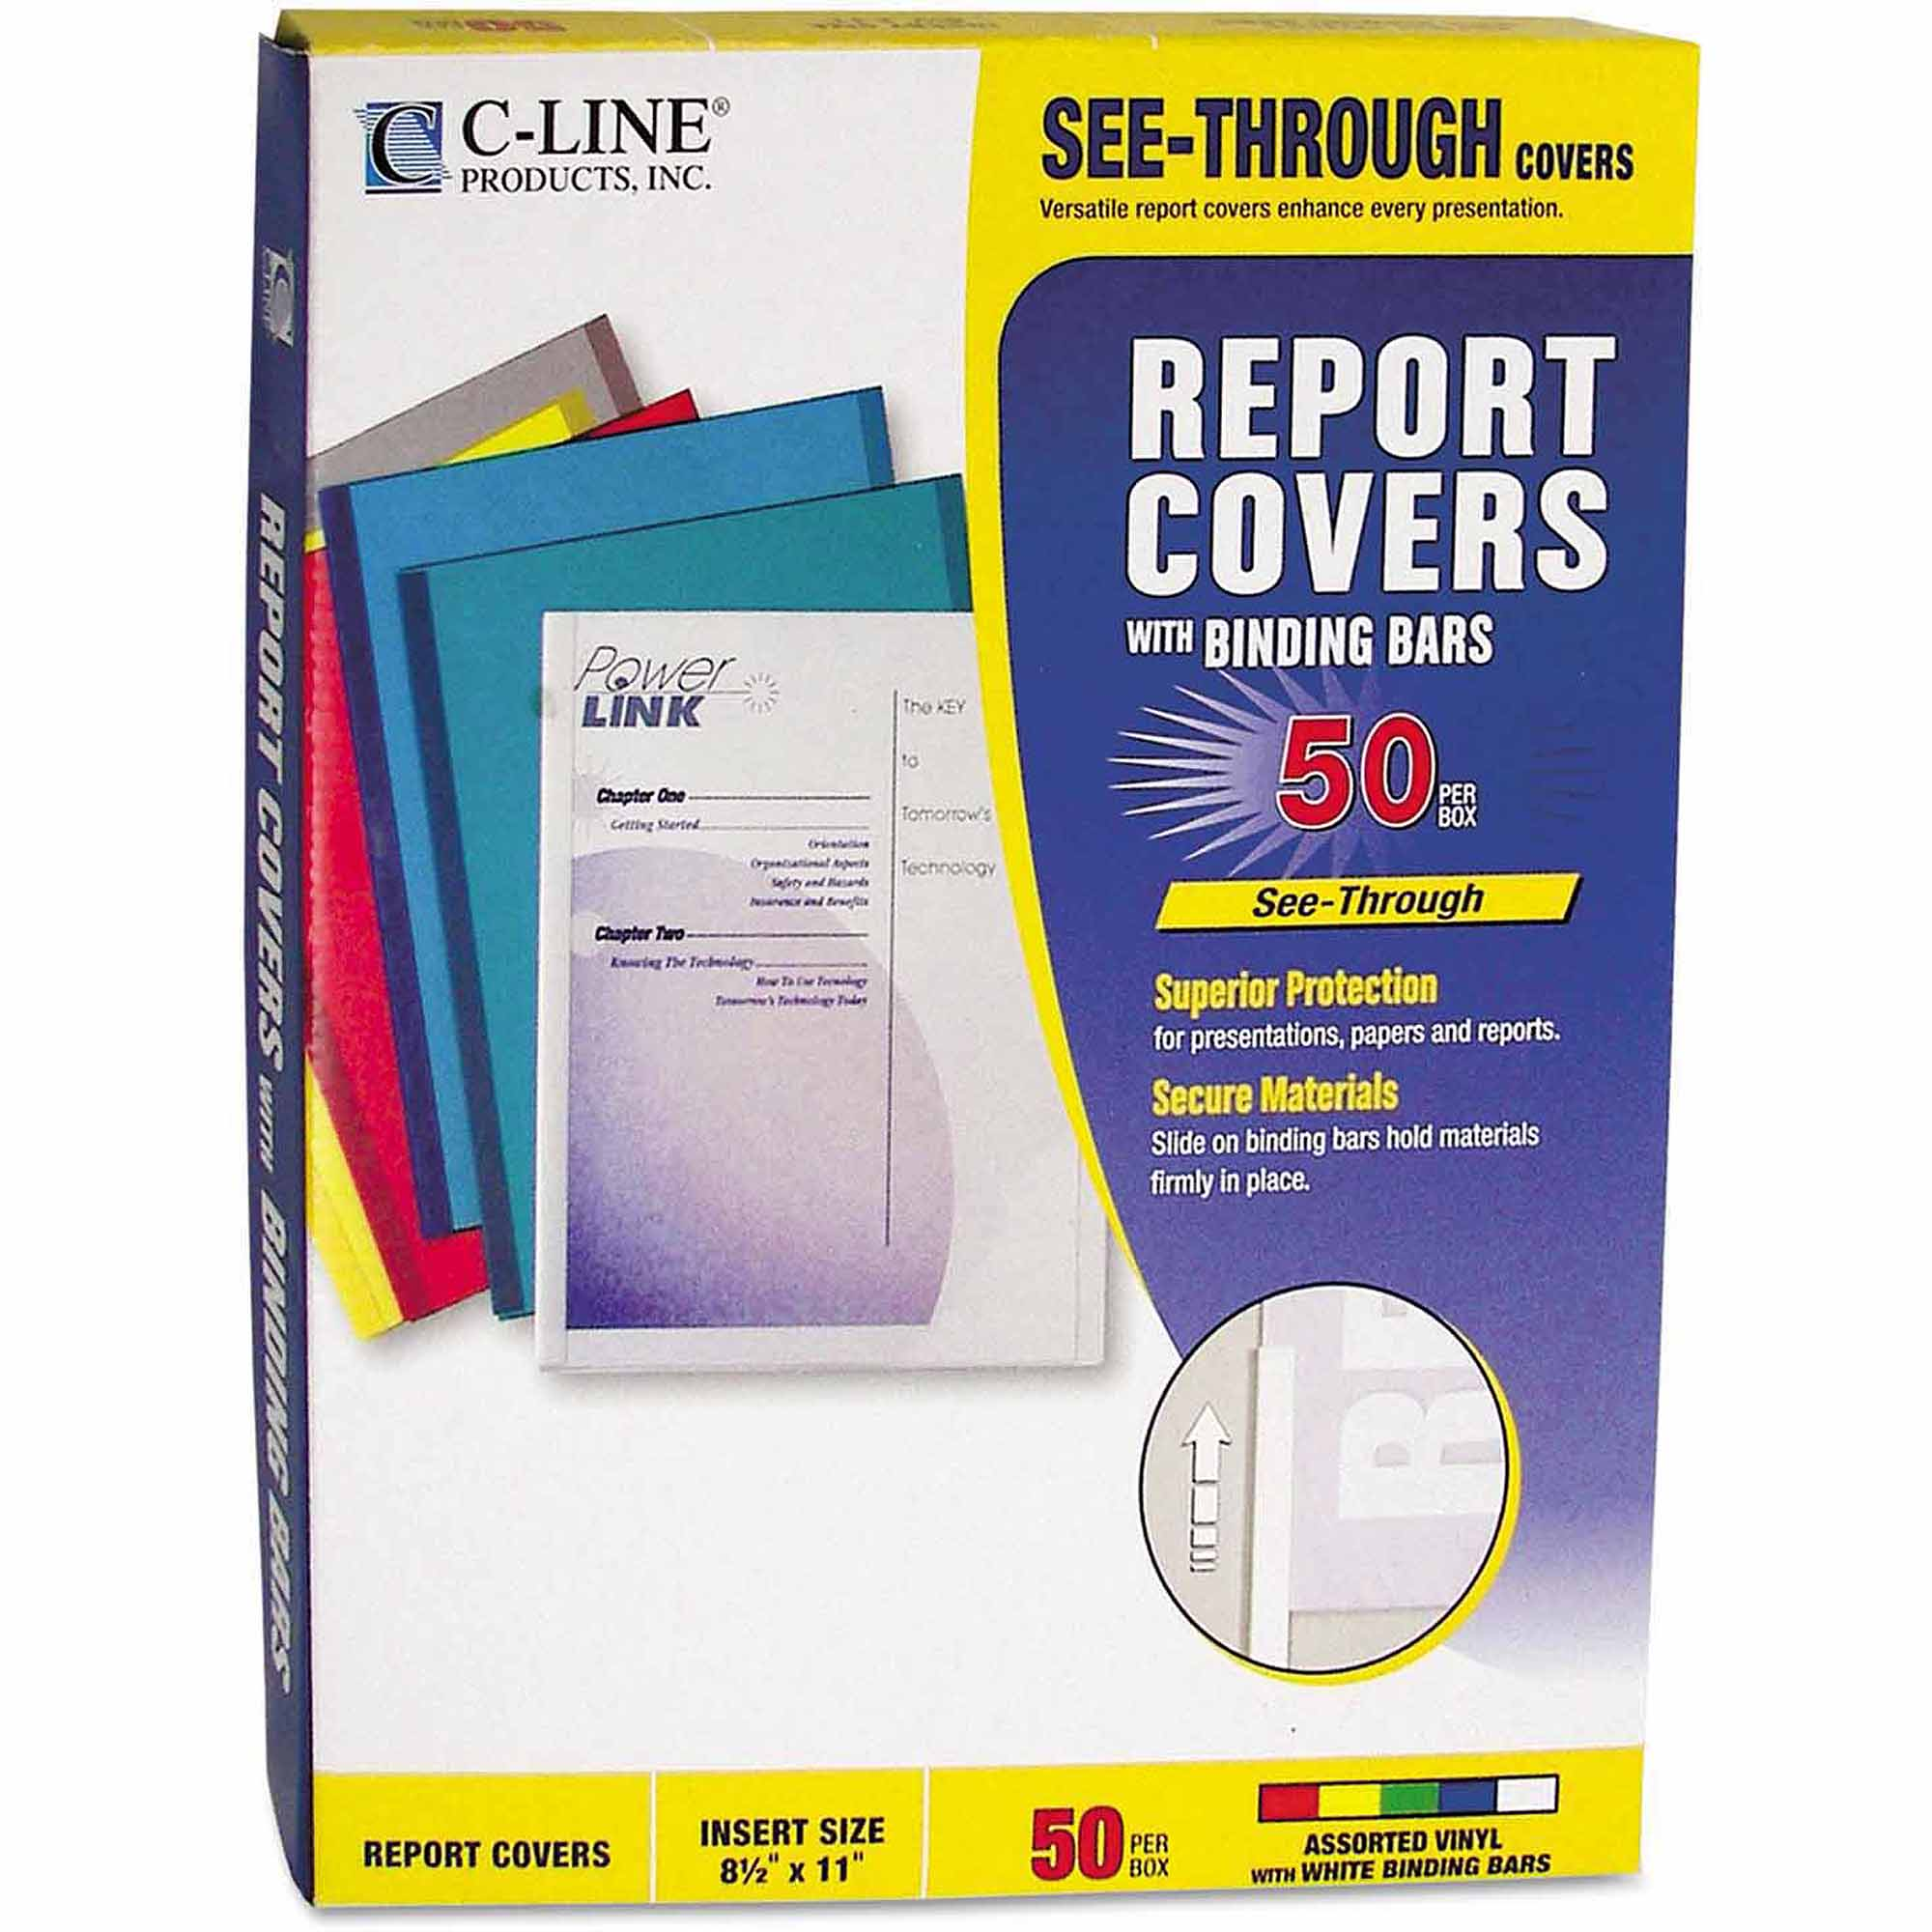 "C-Line Vinyl Report Covers with Binding Bars, White Binding Bars, 11"" x 8-1/2"", 50/Box"